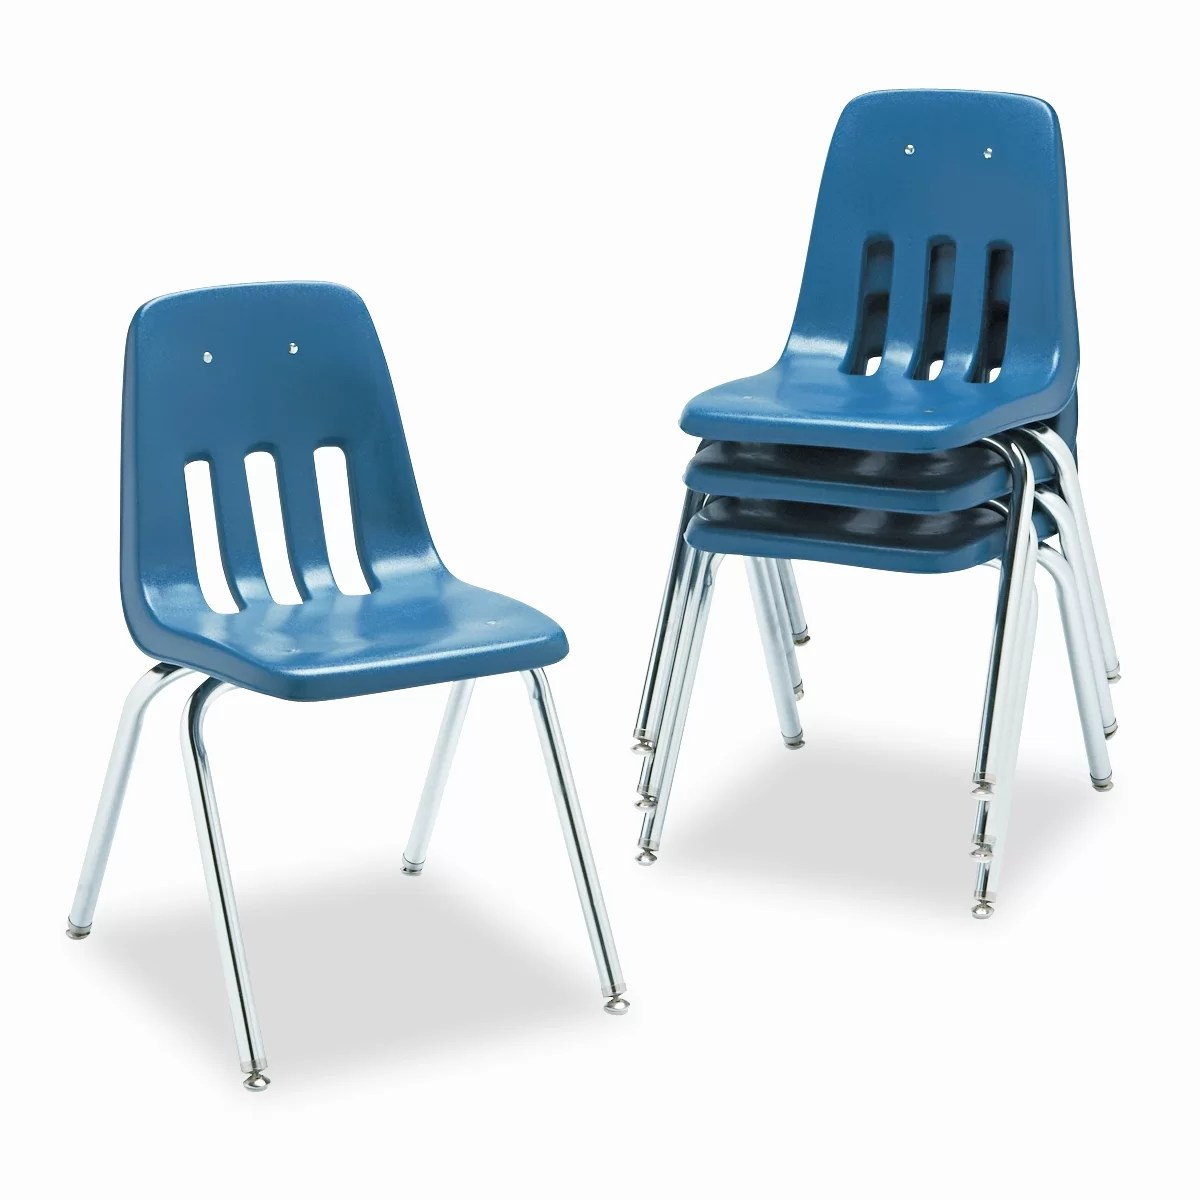 Virco Chairs Virco 9000 Series Plastic Classroom Chair And Reviews Wayfair